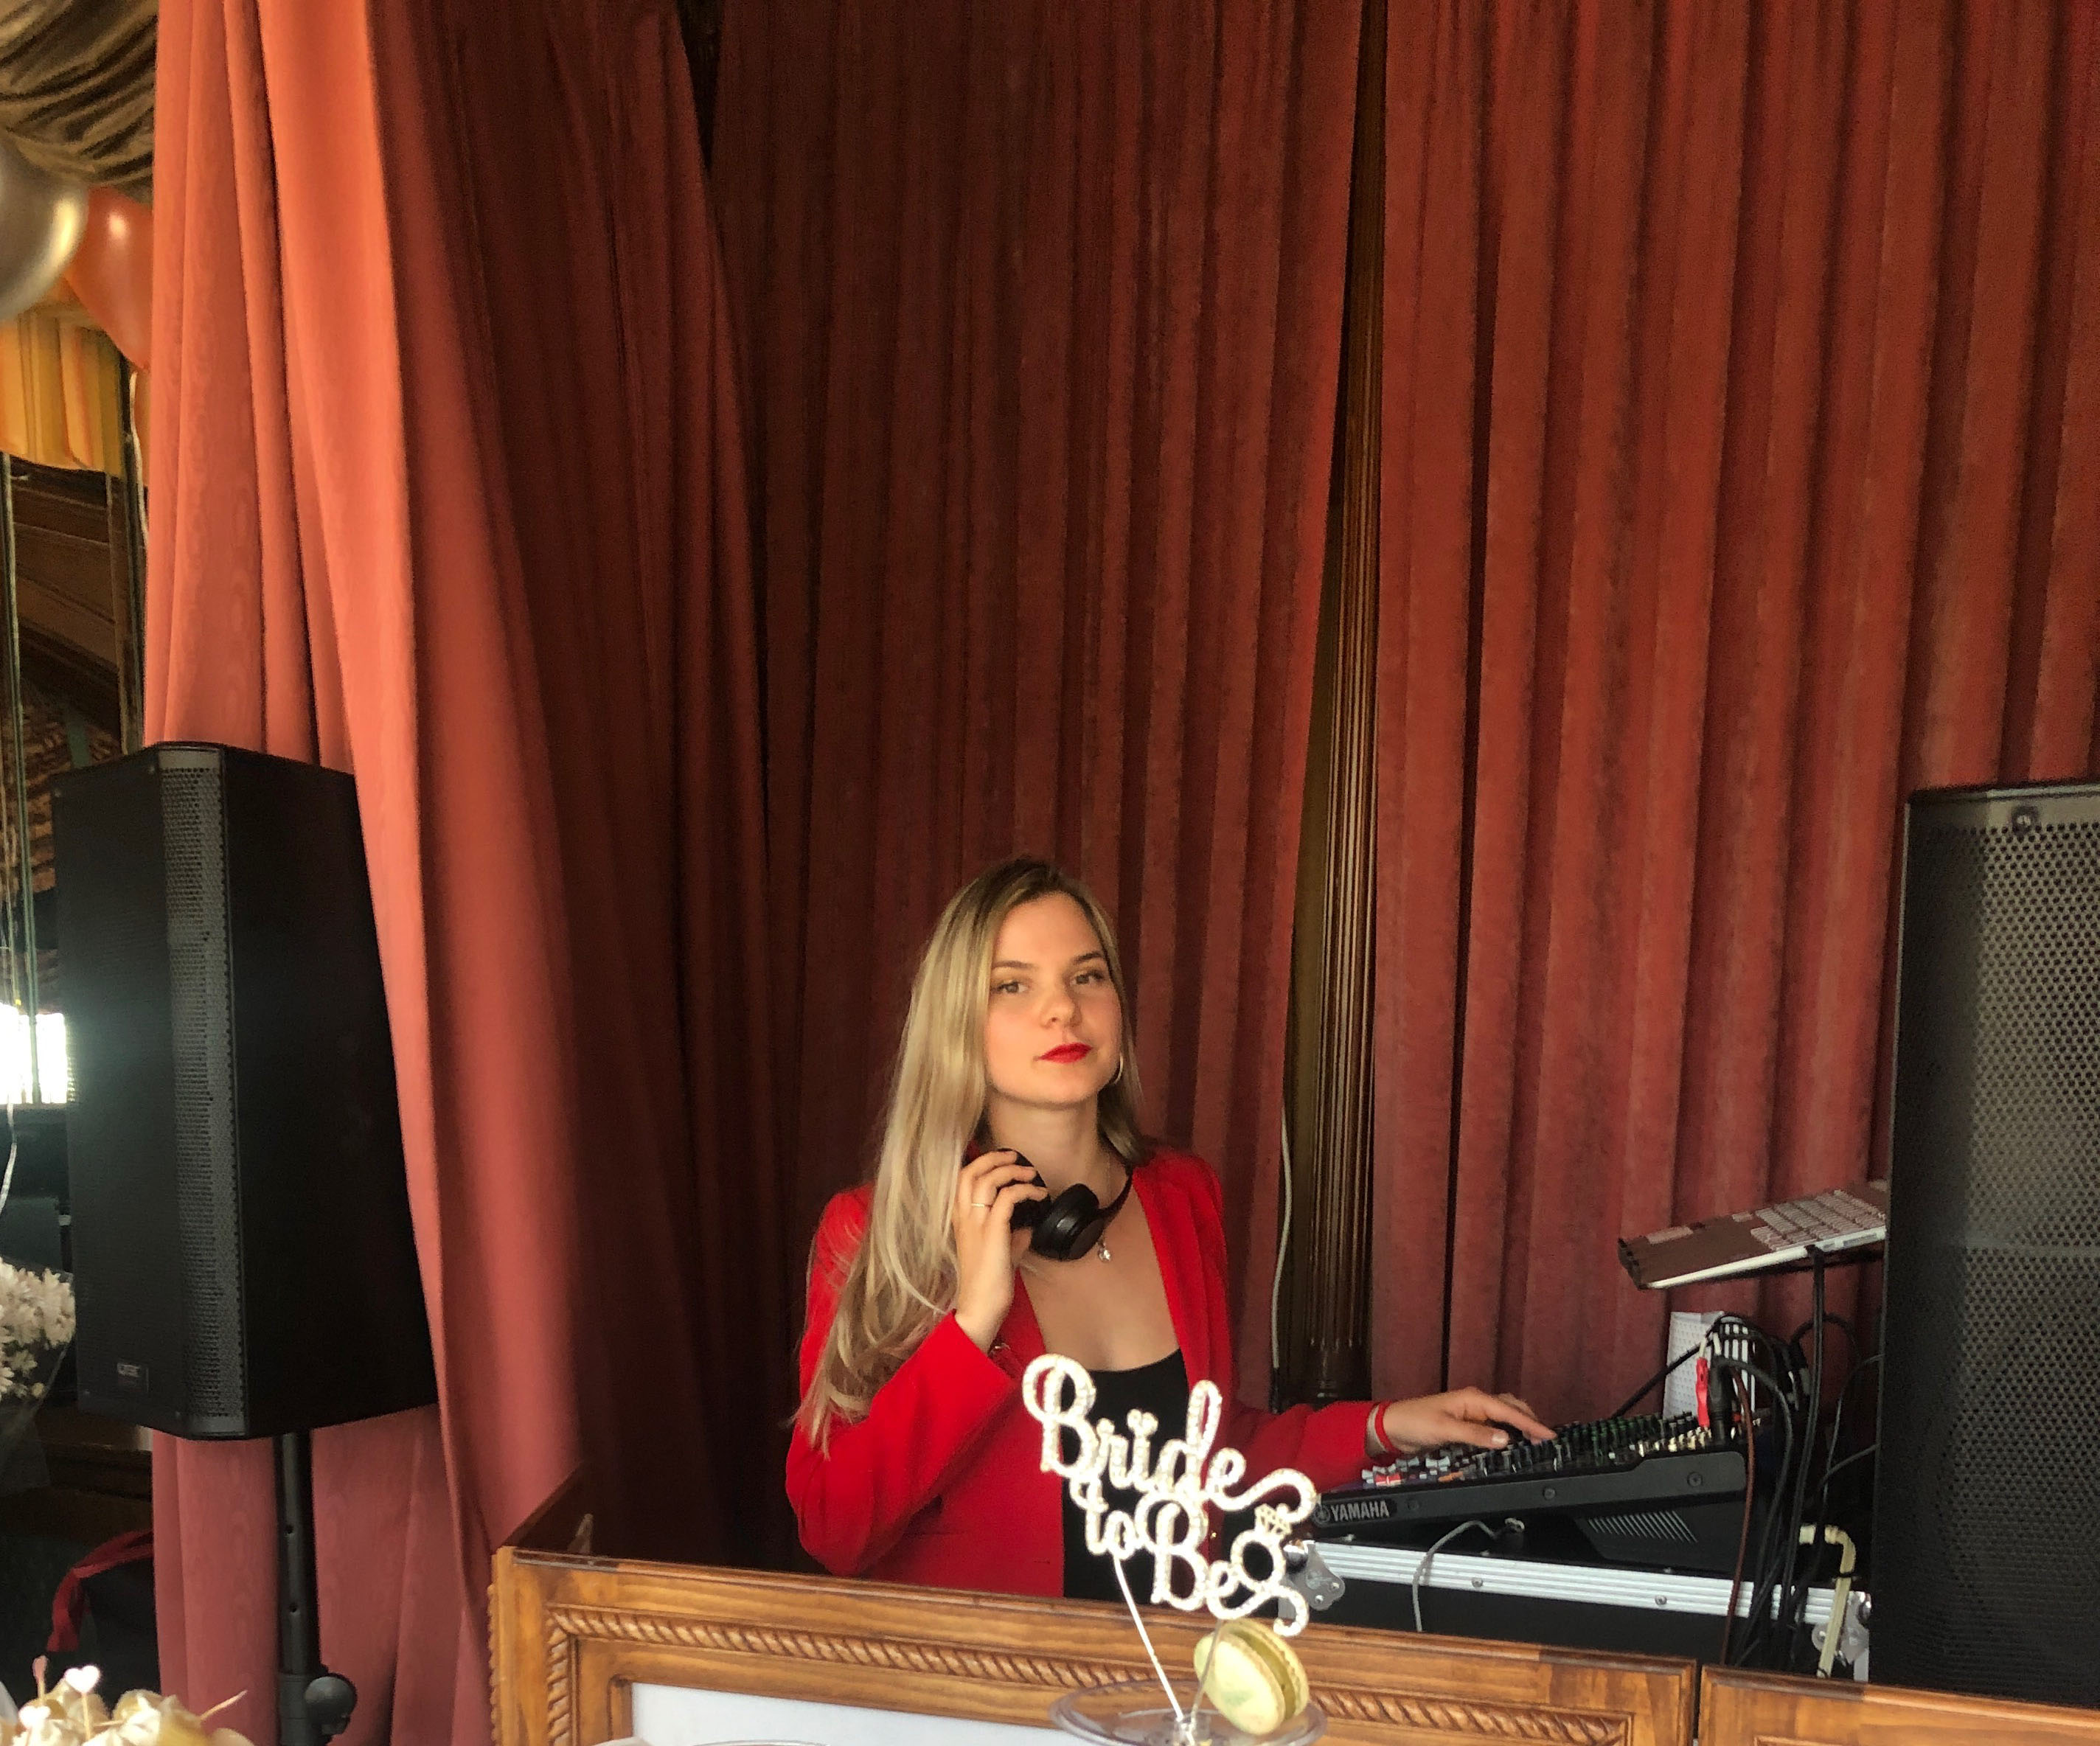 DJ Alisa, bachelorette party, The Manor, 111 Prospect Avenue, West Orange, New Jersey  07052, Sunday, June 30th, 2019